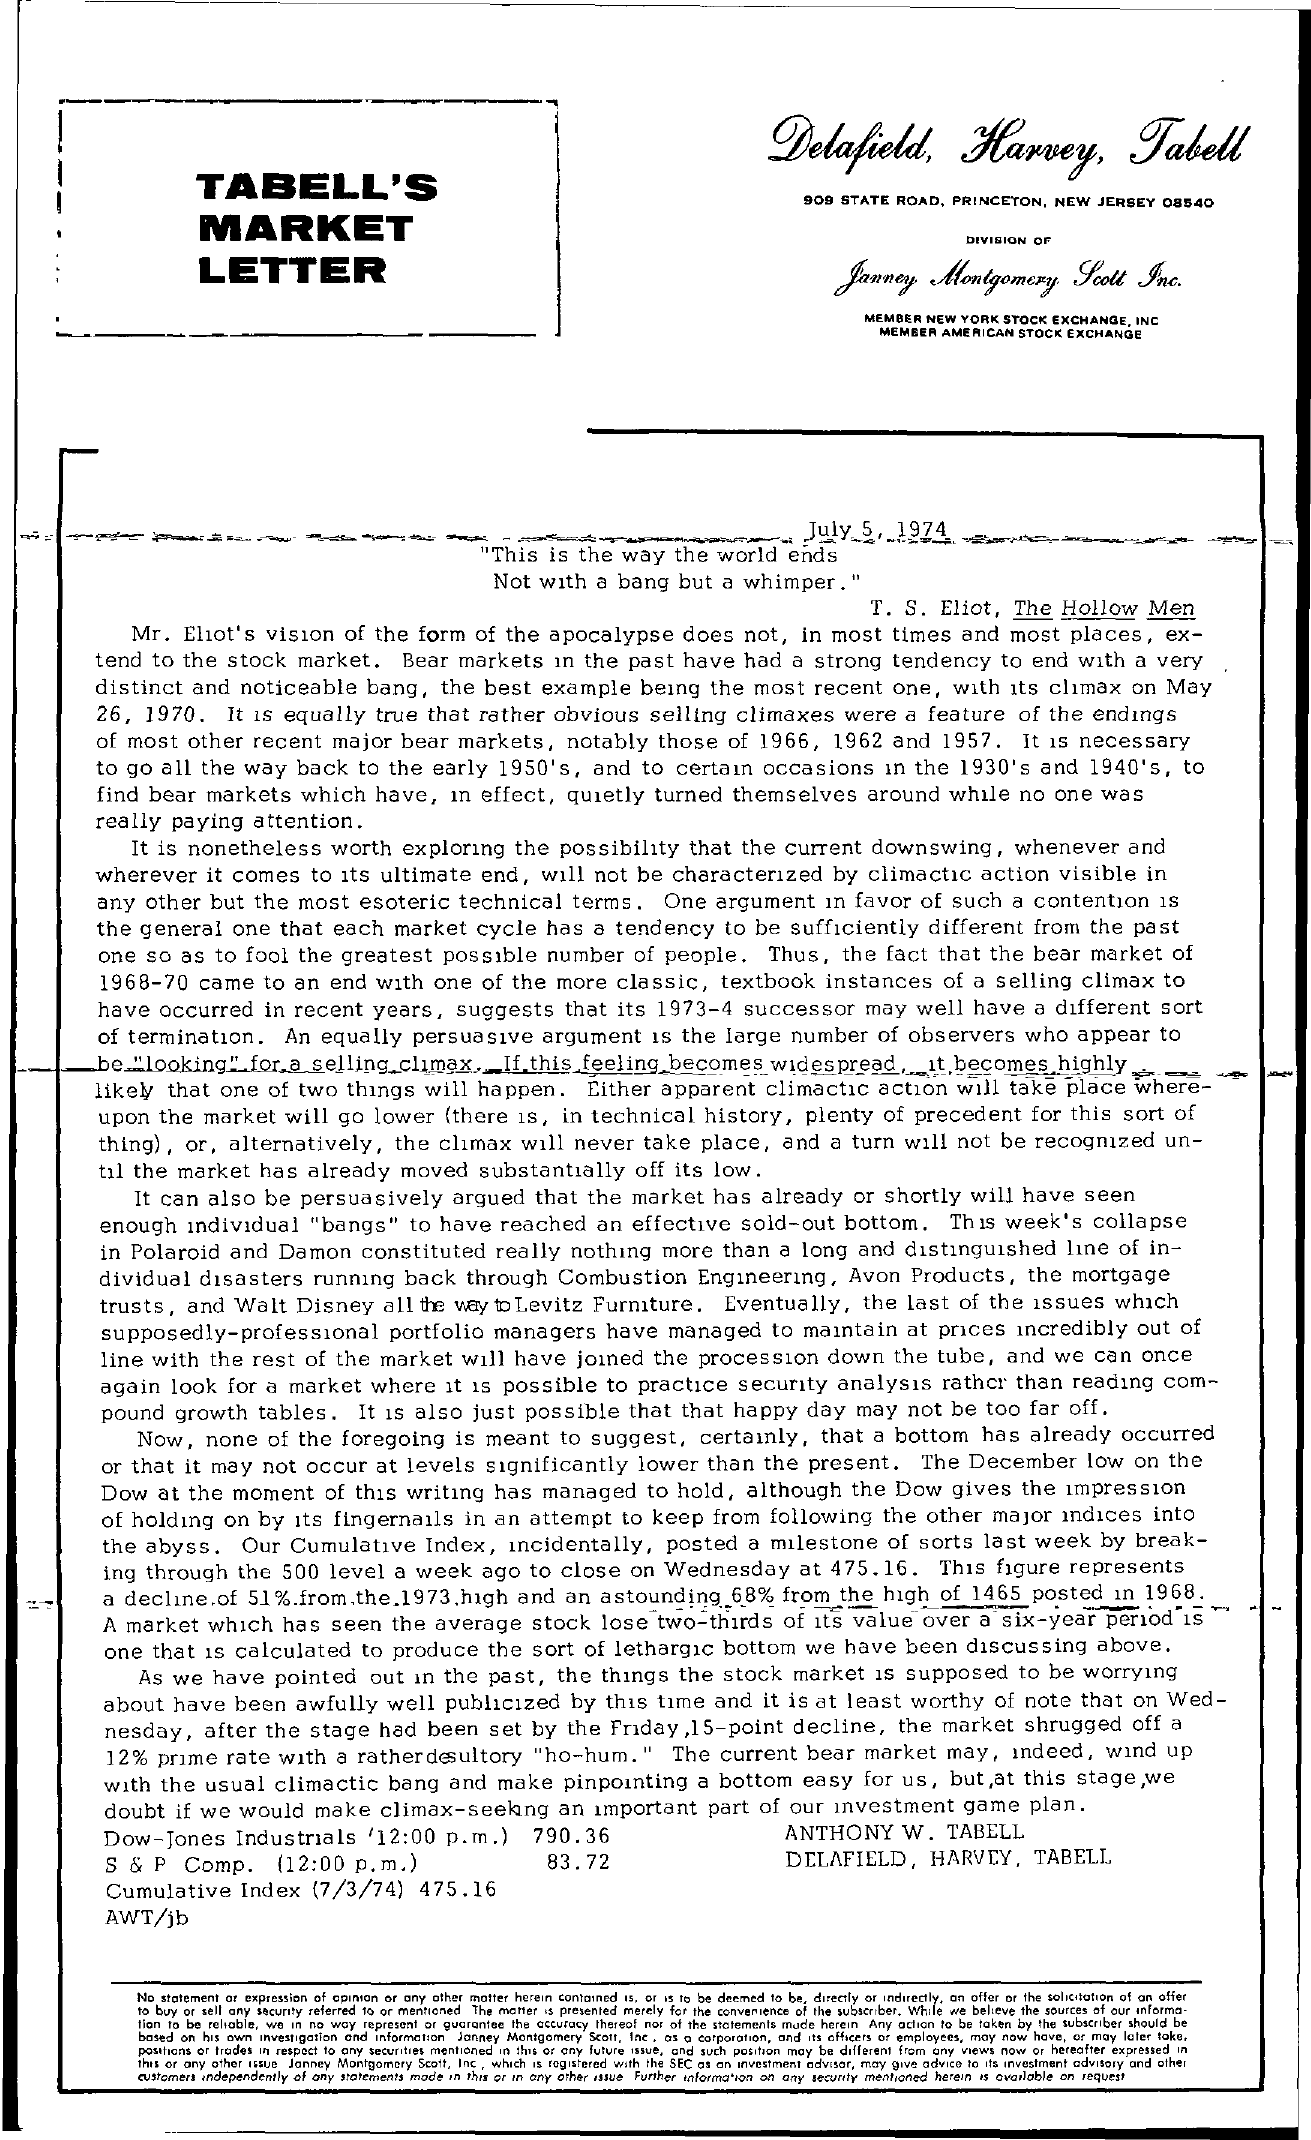 Tabell's Market Letter - July 05, 1974